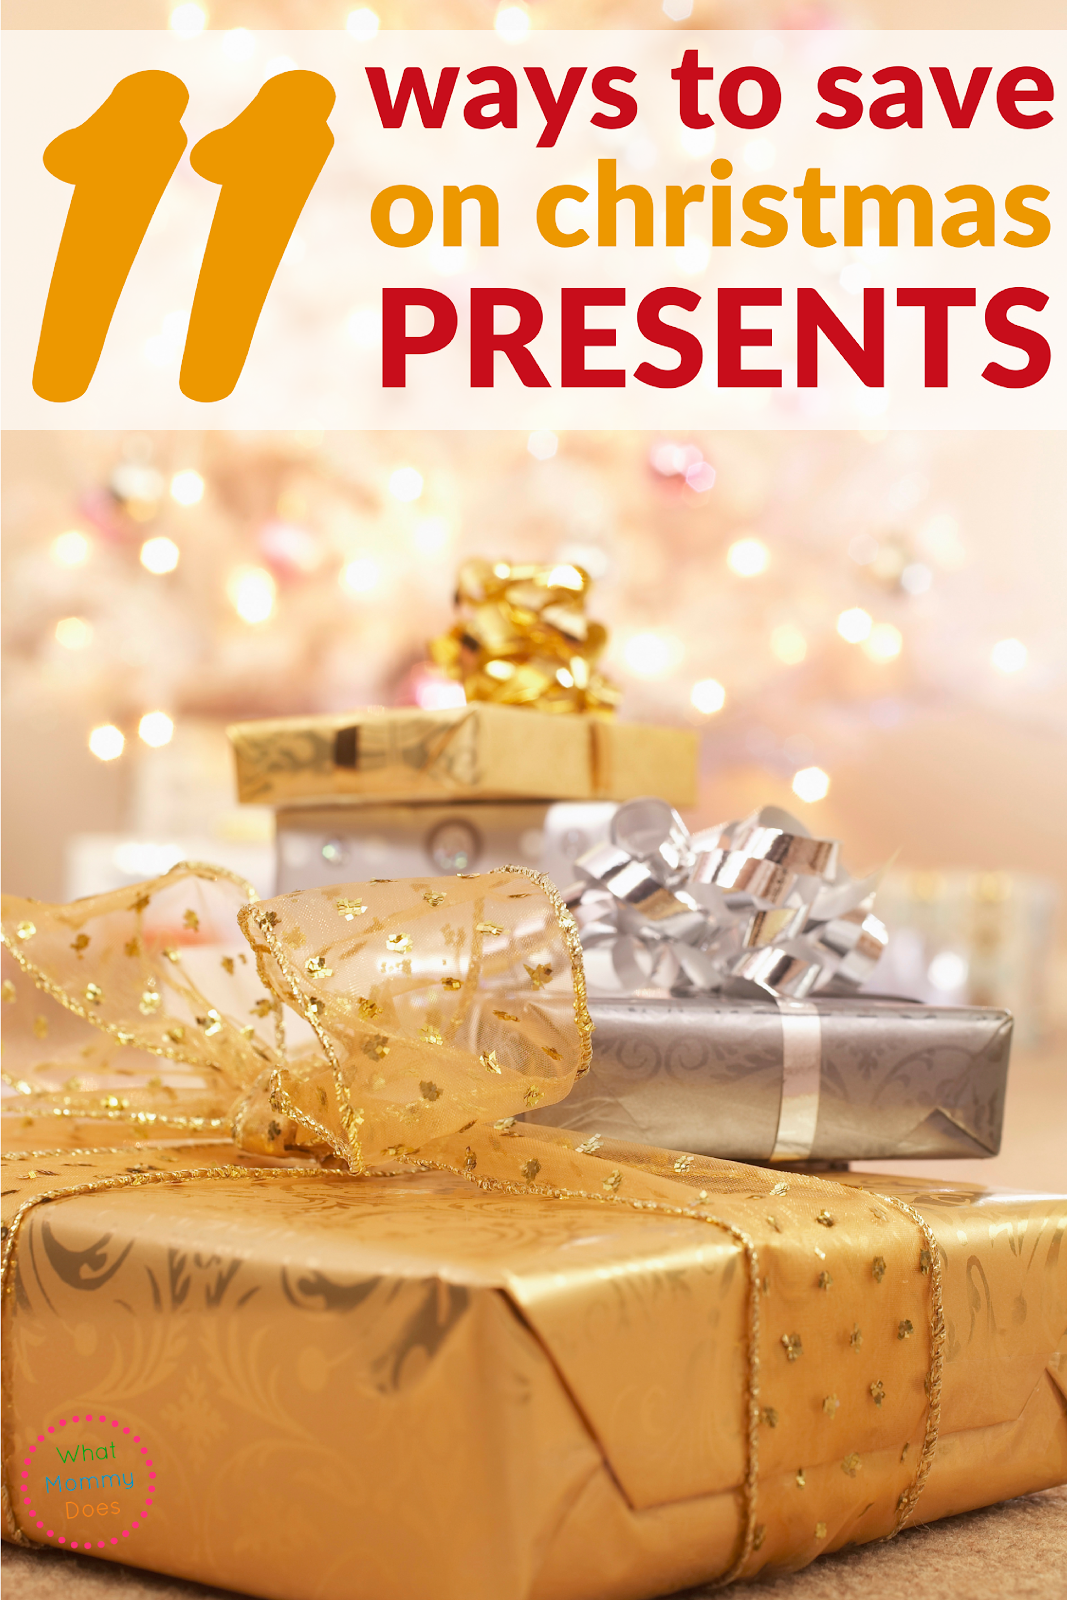 11 Ways to Save on Christmas Presents - Learn all the best ways to save money on Christmas gifts. If you have a tight Christmas budget, you can still enjoy the holiday without going broke!